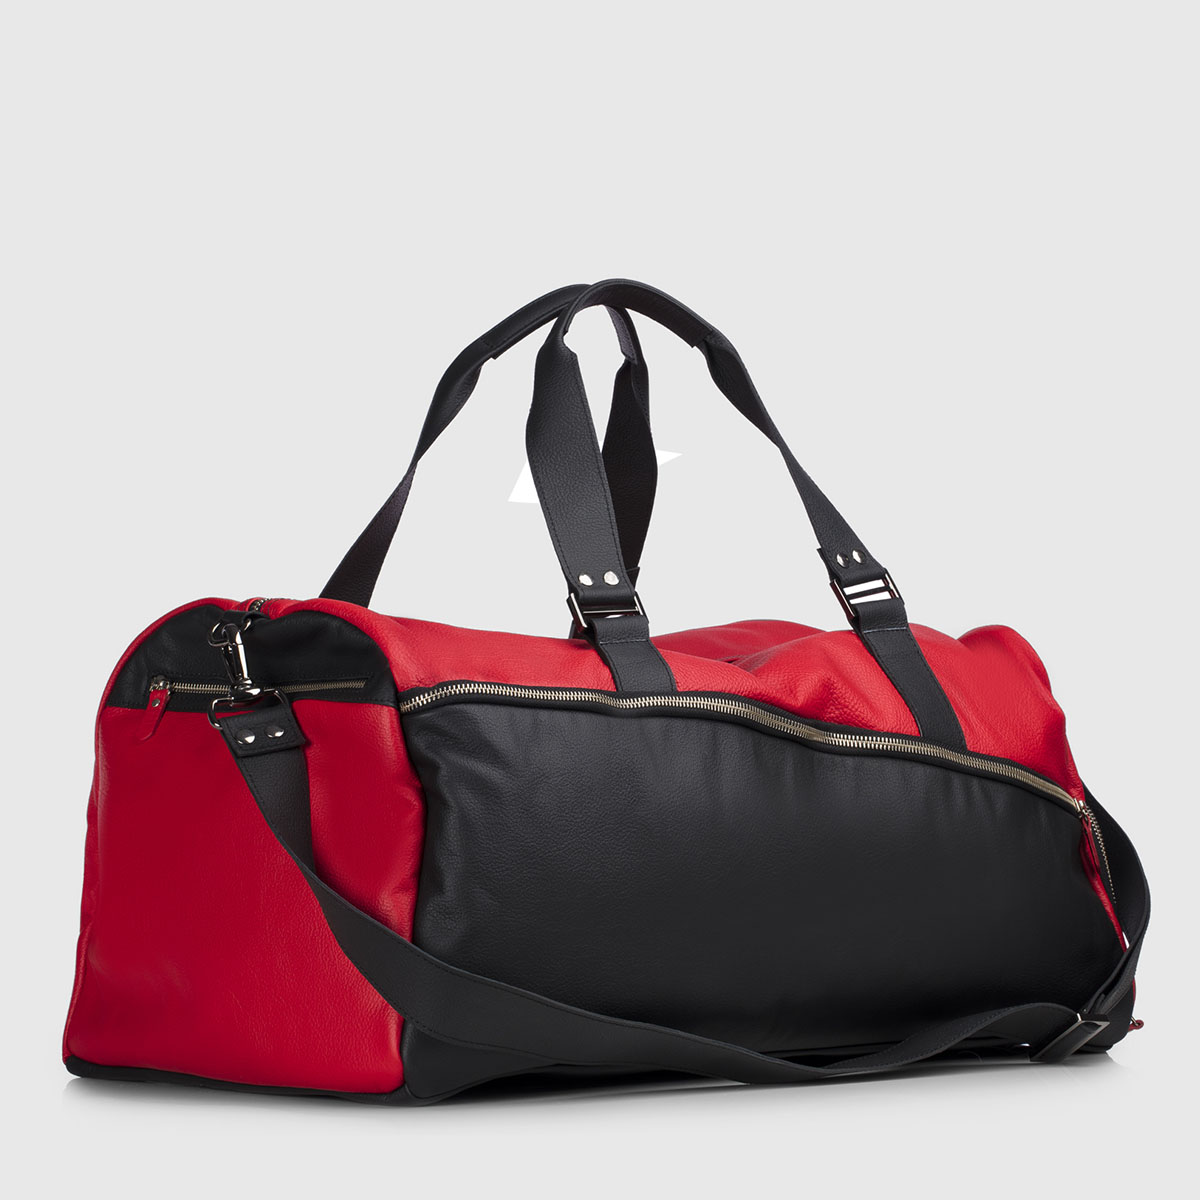 Red & Black Leather Duffle-bag